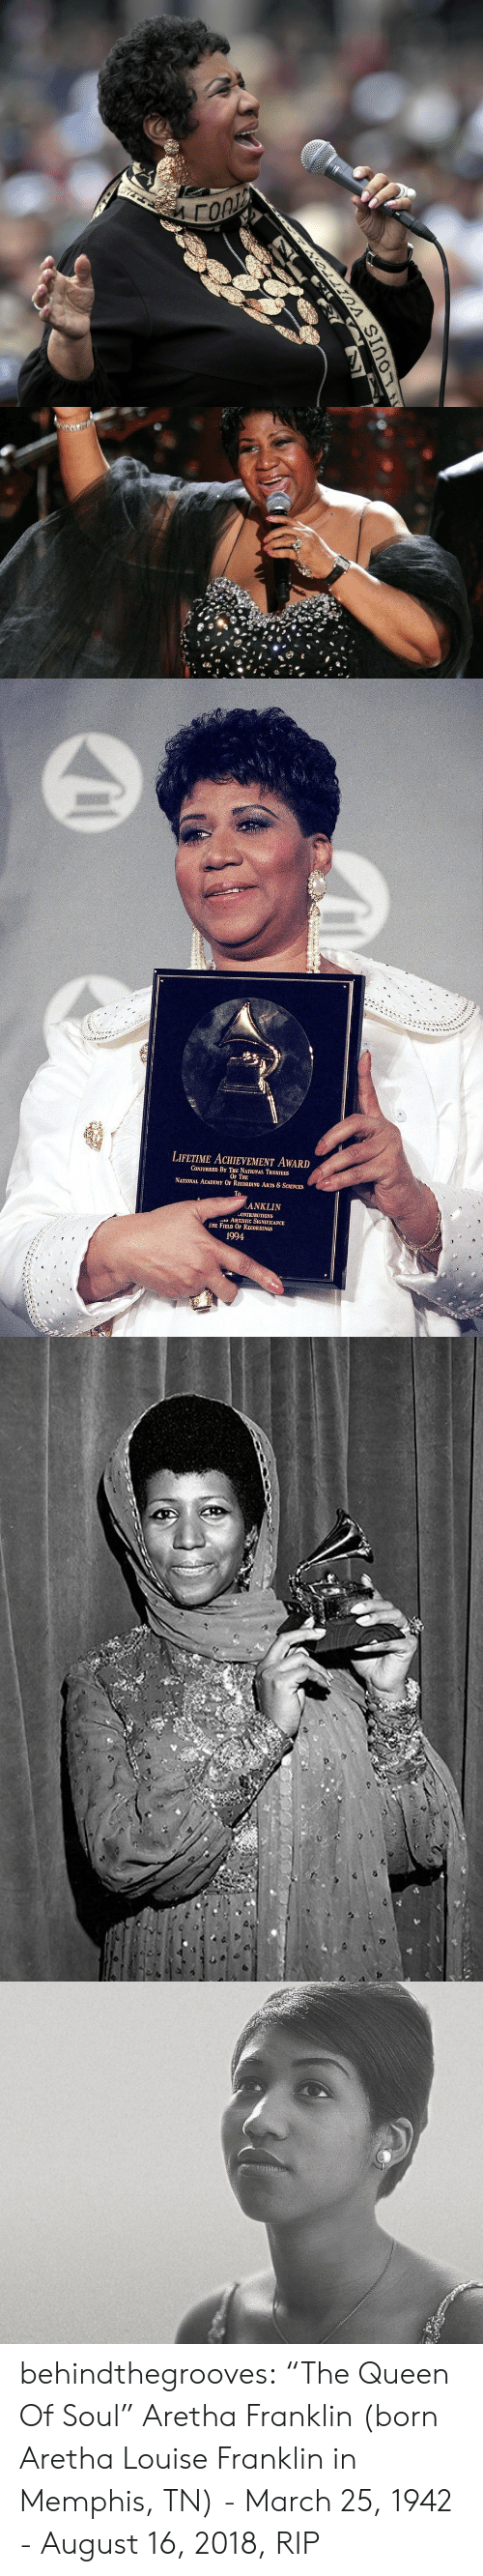 "Tumblr, Queen, and Academy: LIFETIME ACHEVEMENT AWARD  CONFERRED BY THE NATIONAL TRUSTEES  OF THE  NATIONAL ACADEMY OF RECORDING ARTS & SCIENCES  ANKLIN  ONTRIBUTIONS  ARTISTIC SIGNIFICANCE  HE FIELD OF RECORDINGS  1994 behindthegrooves:    ""The Queen Of Soul"" Aretha Franklin (born Aretha Louise Franklin in Memphis, TN) - March 25, 1942 - August 16, 2018, RIP"